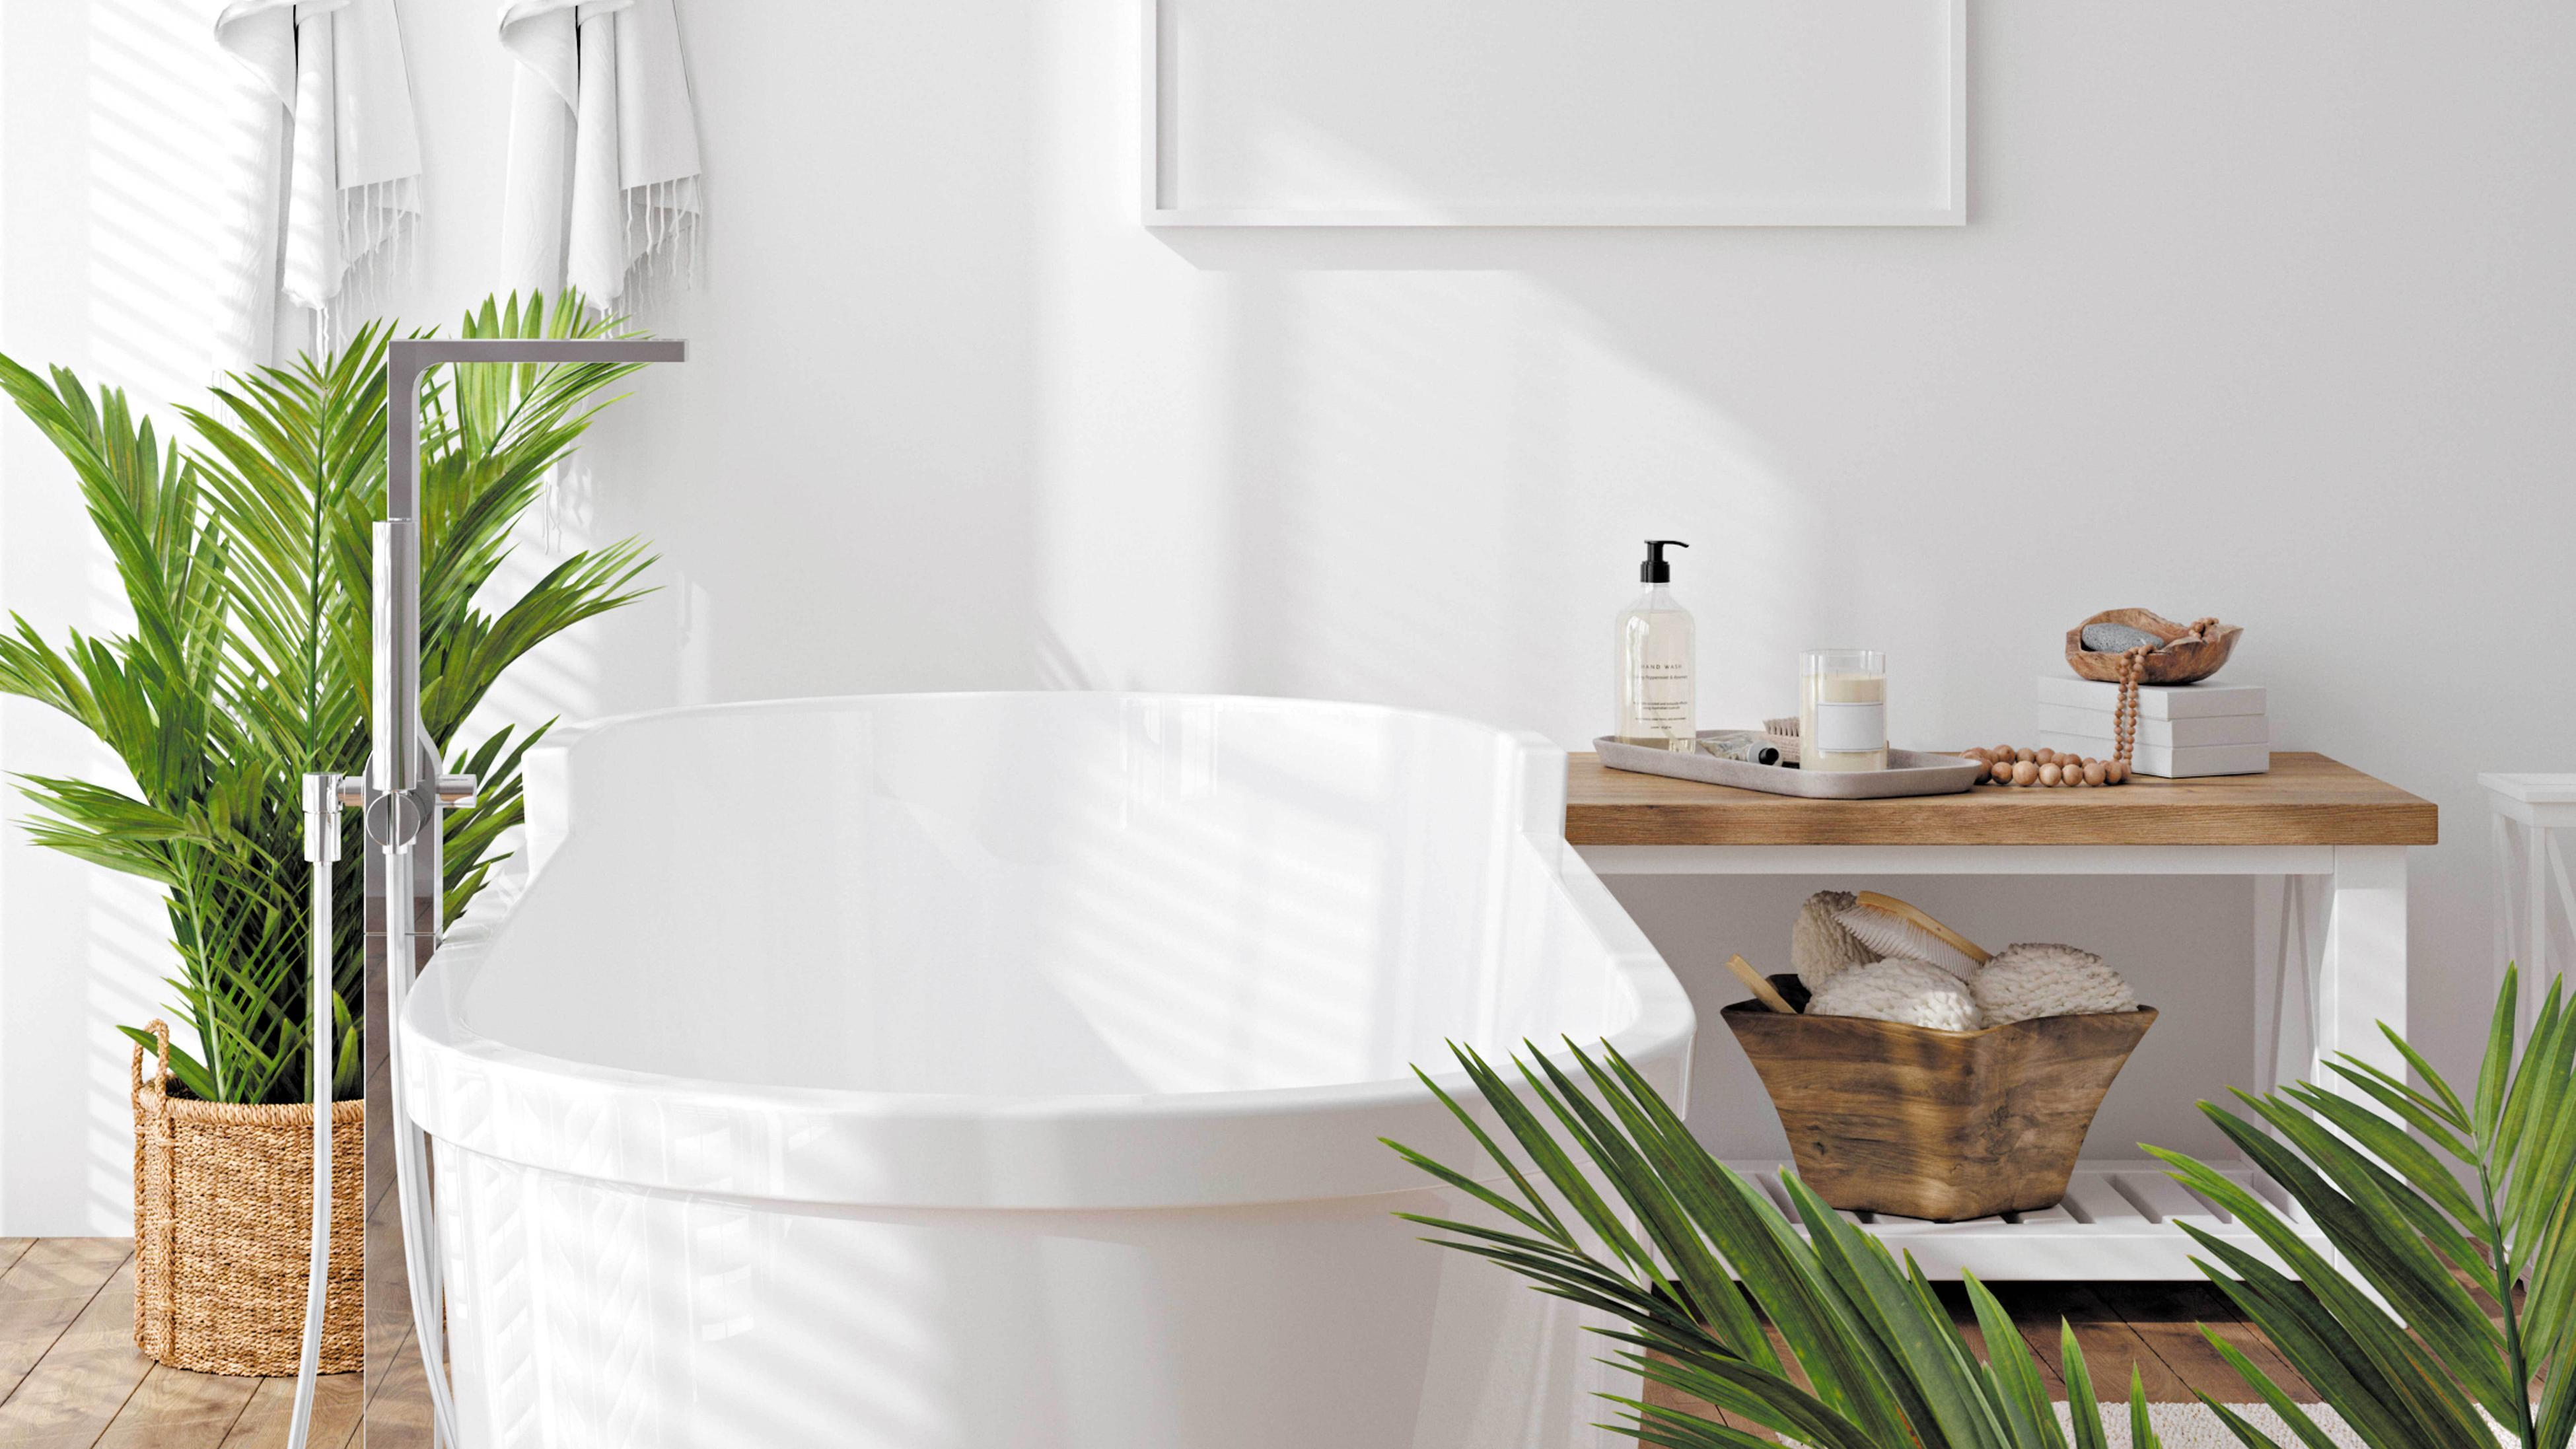 A white freestanding bath in a bathroom with timber floors.